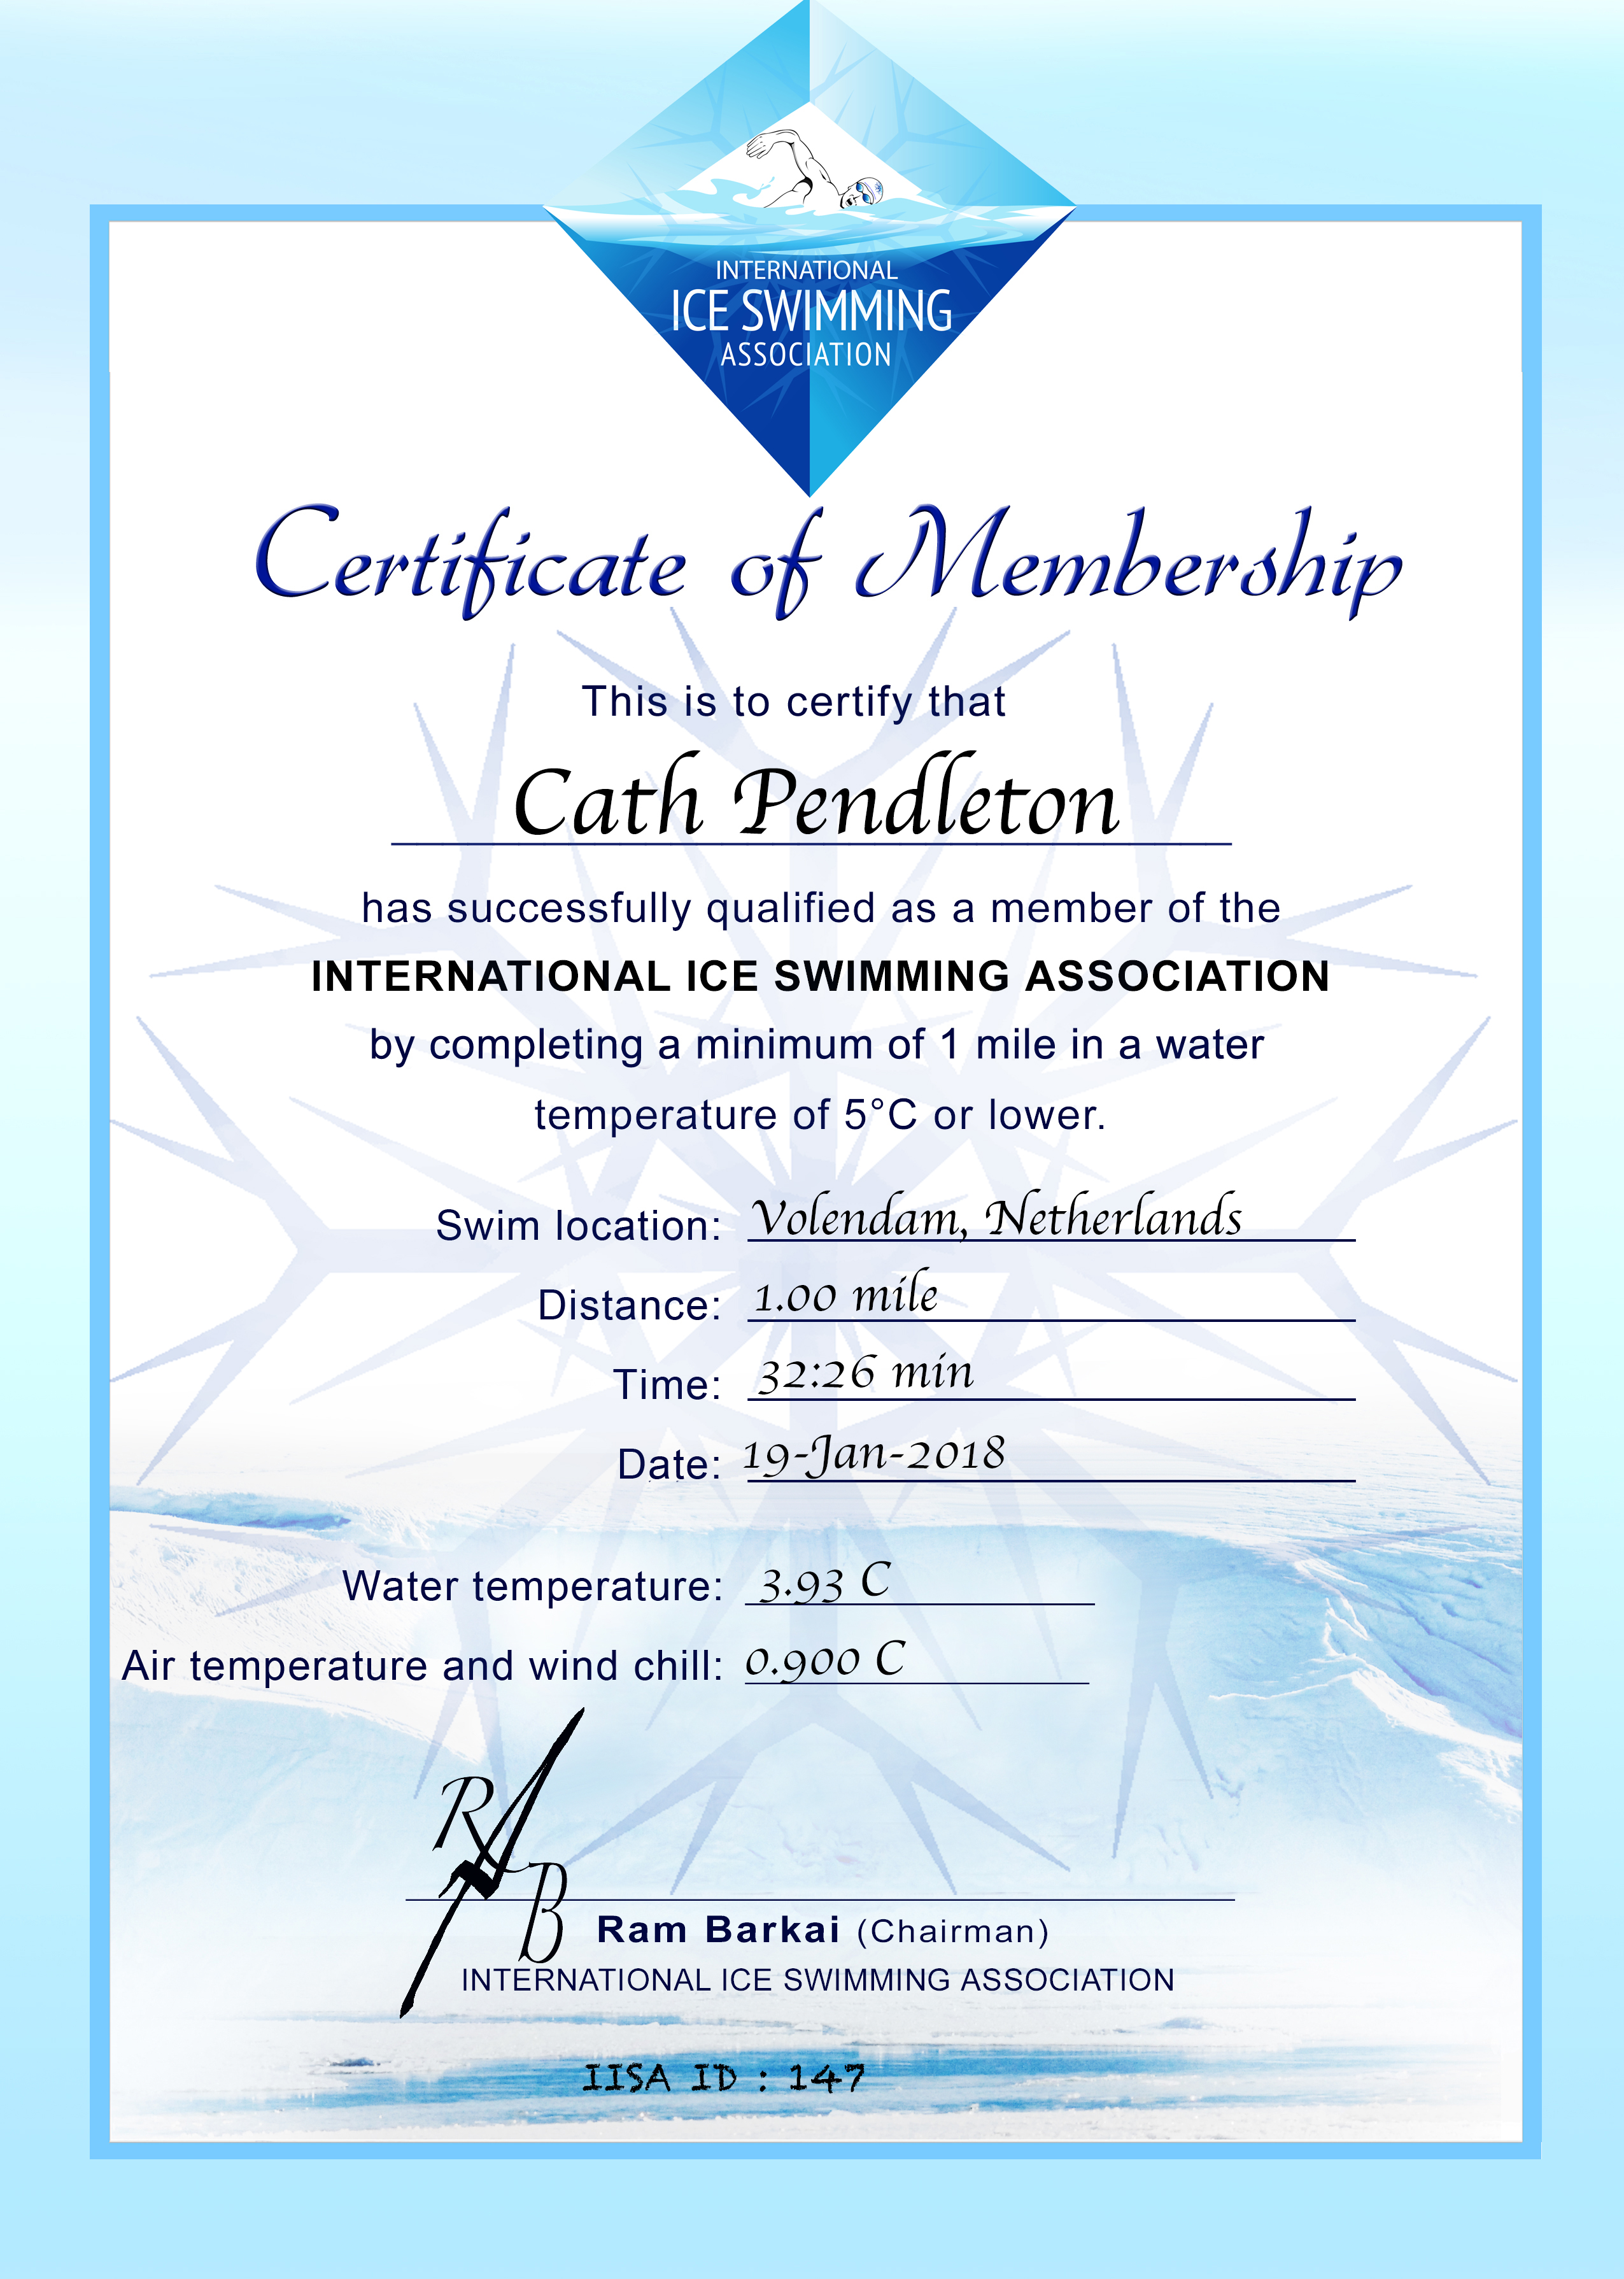 Ice Mile Certificate - Cath Pendleton